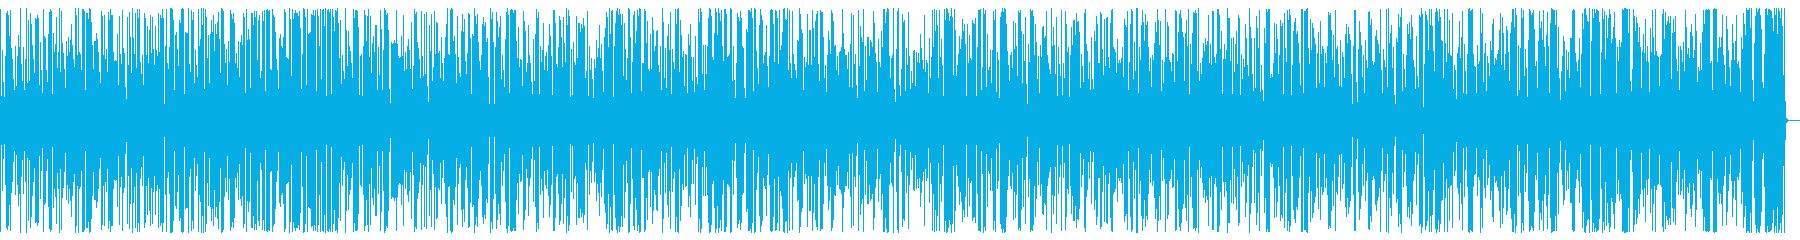 Bright, relaxed and stylish jazz piano BGM's reproduced waveform